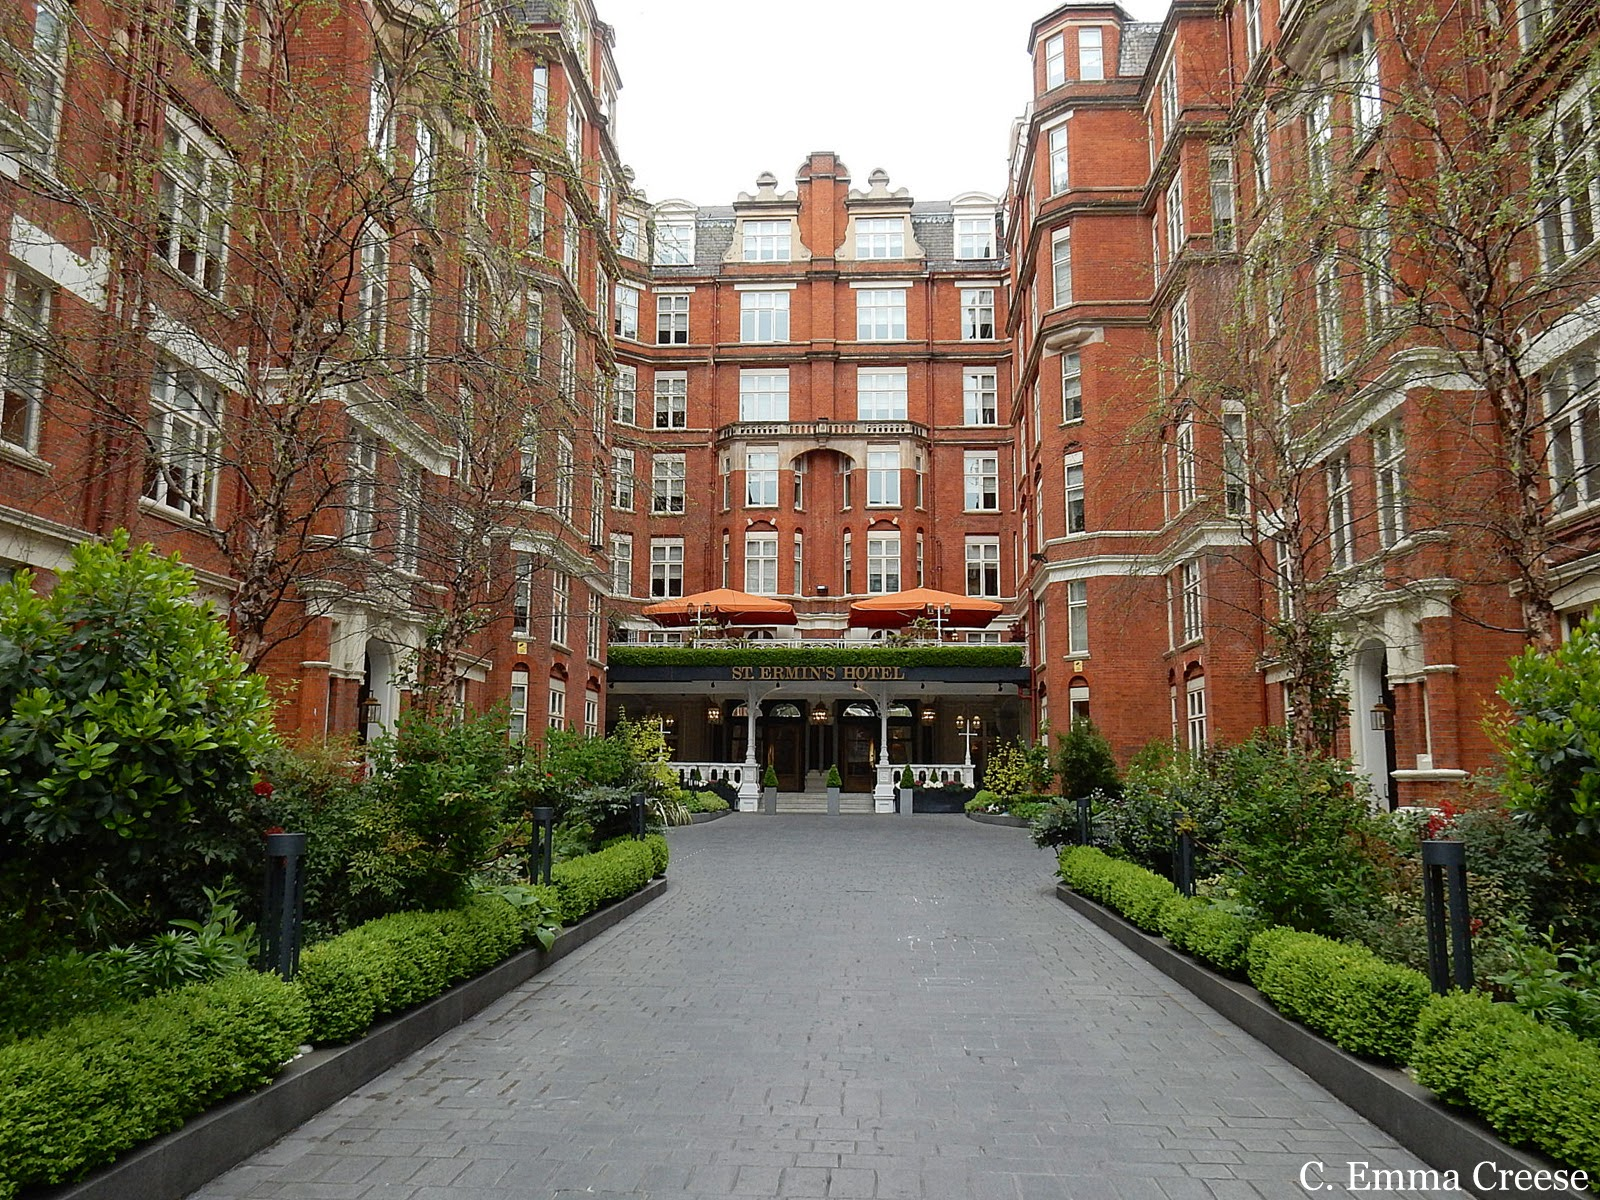 St Ermin's Hotel Westminster Urban Beekeeping Course